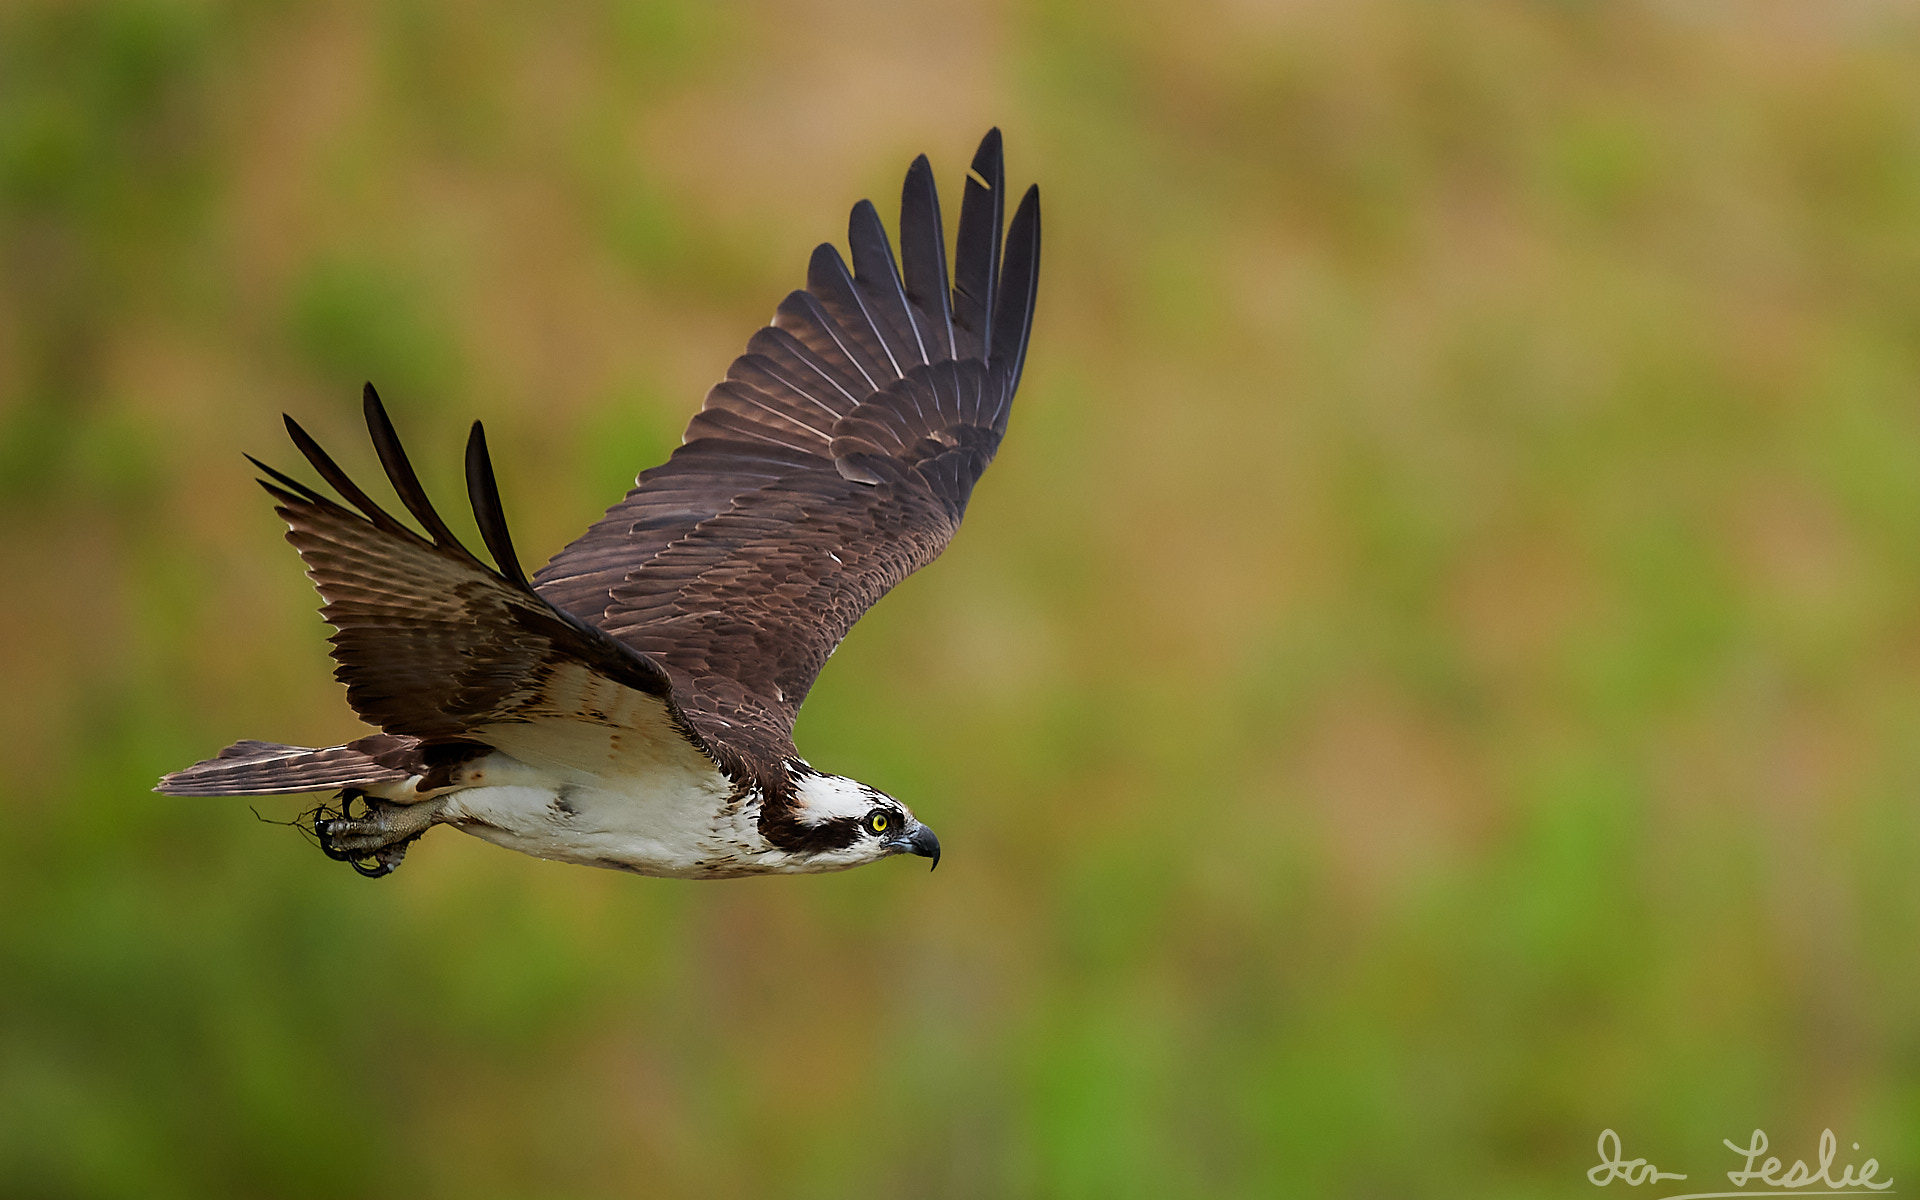 Male Osprey takes flight